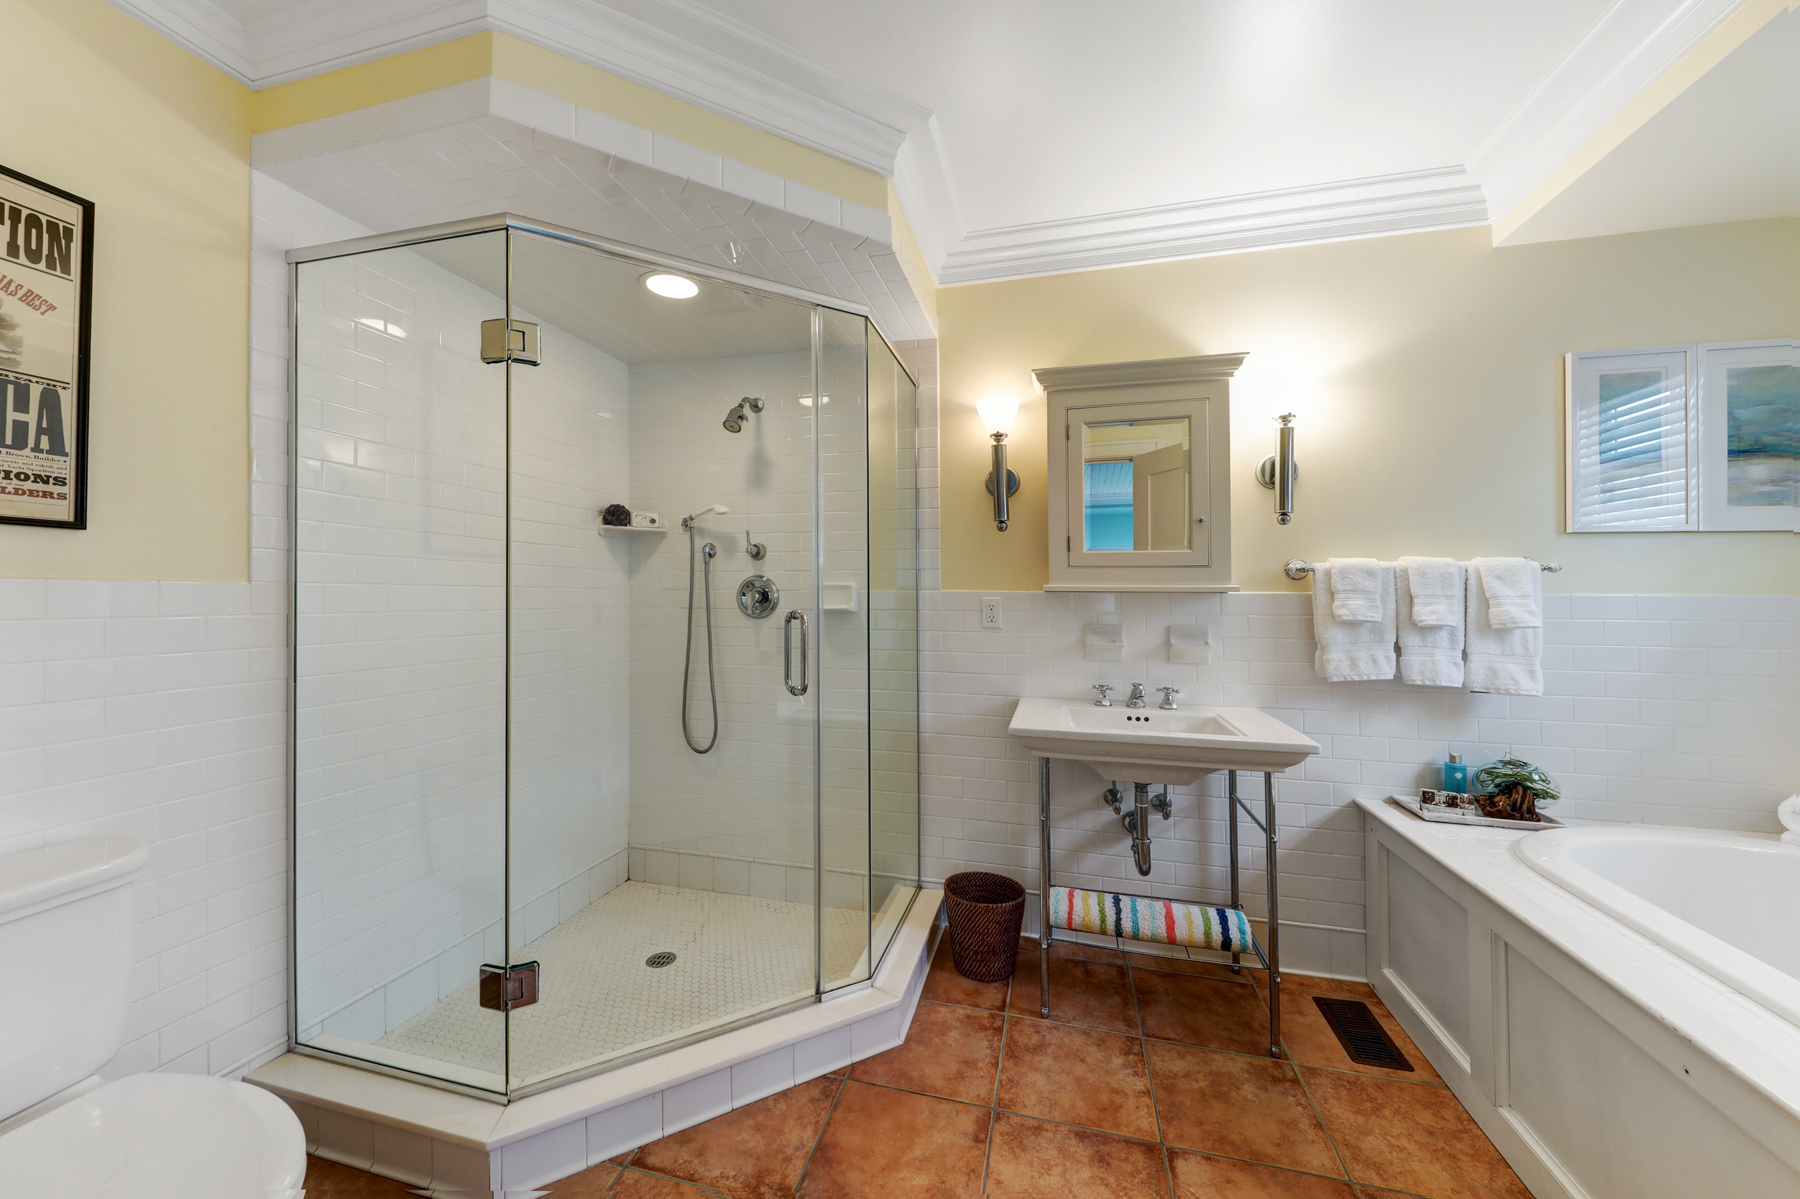 16. Bath of BR1 – VMD (7 of 73)